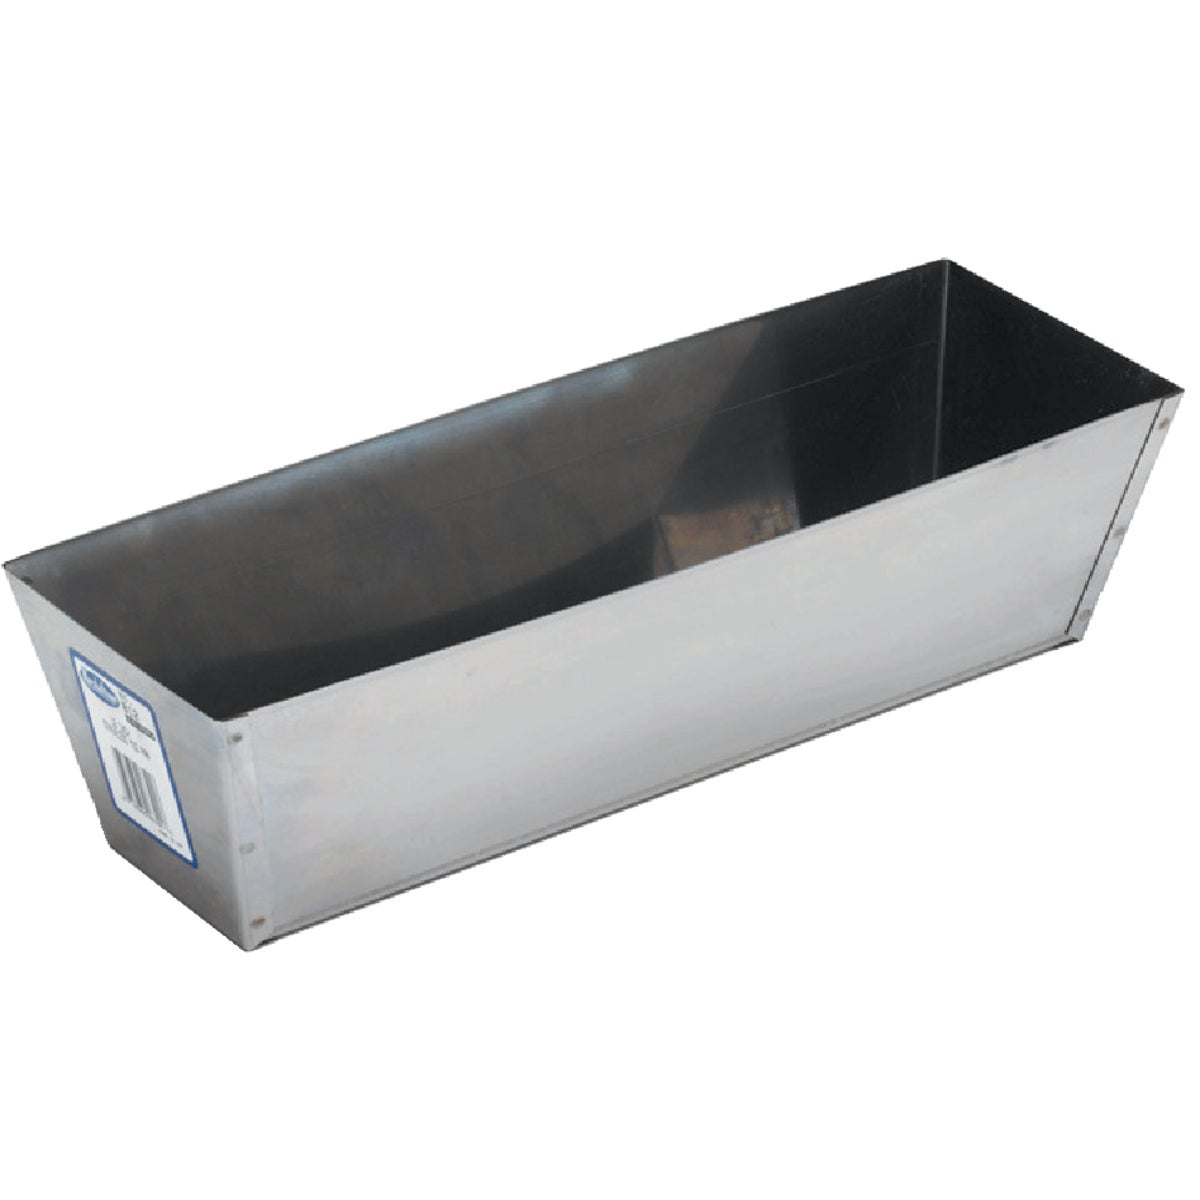 "12"" SS MUD PAN - 16390 by Marshalltown Trowel"